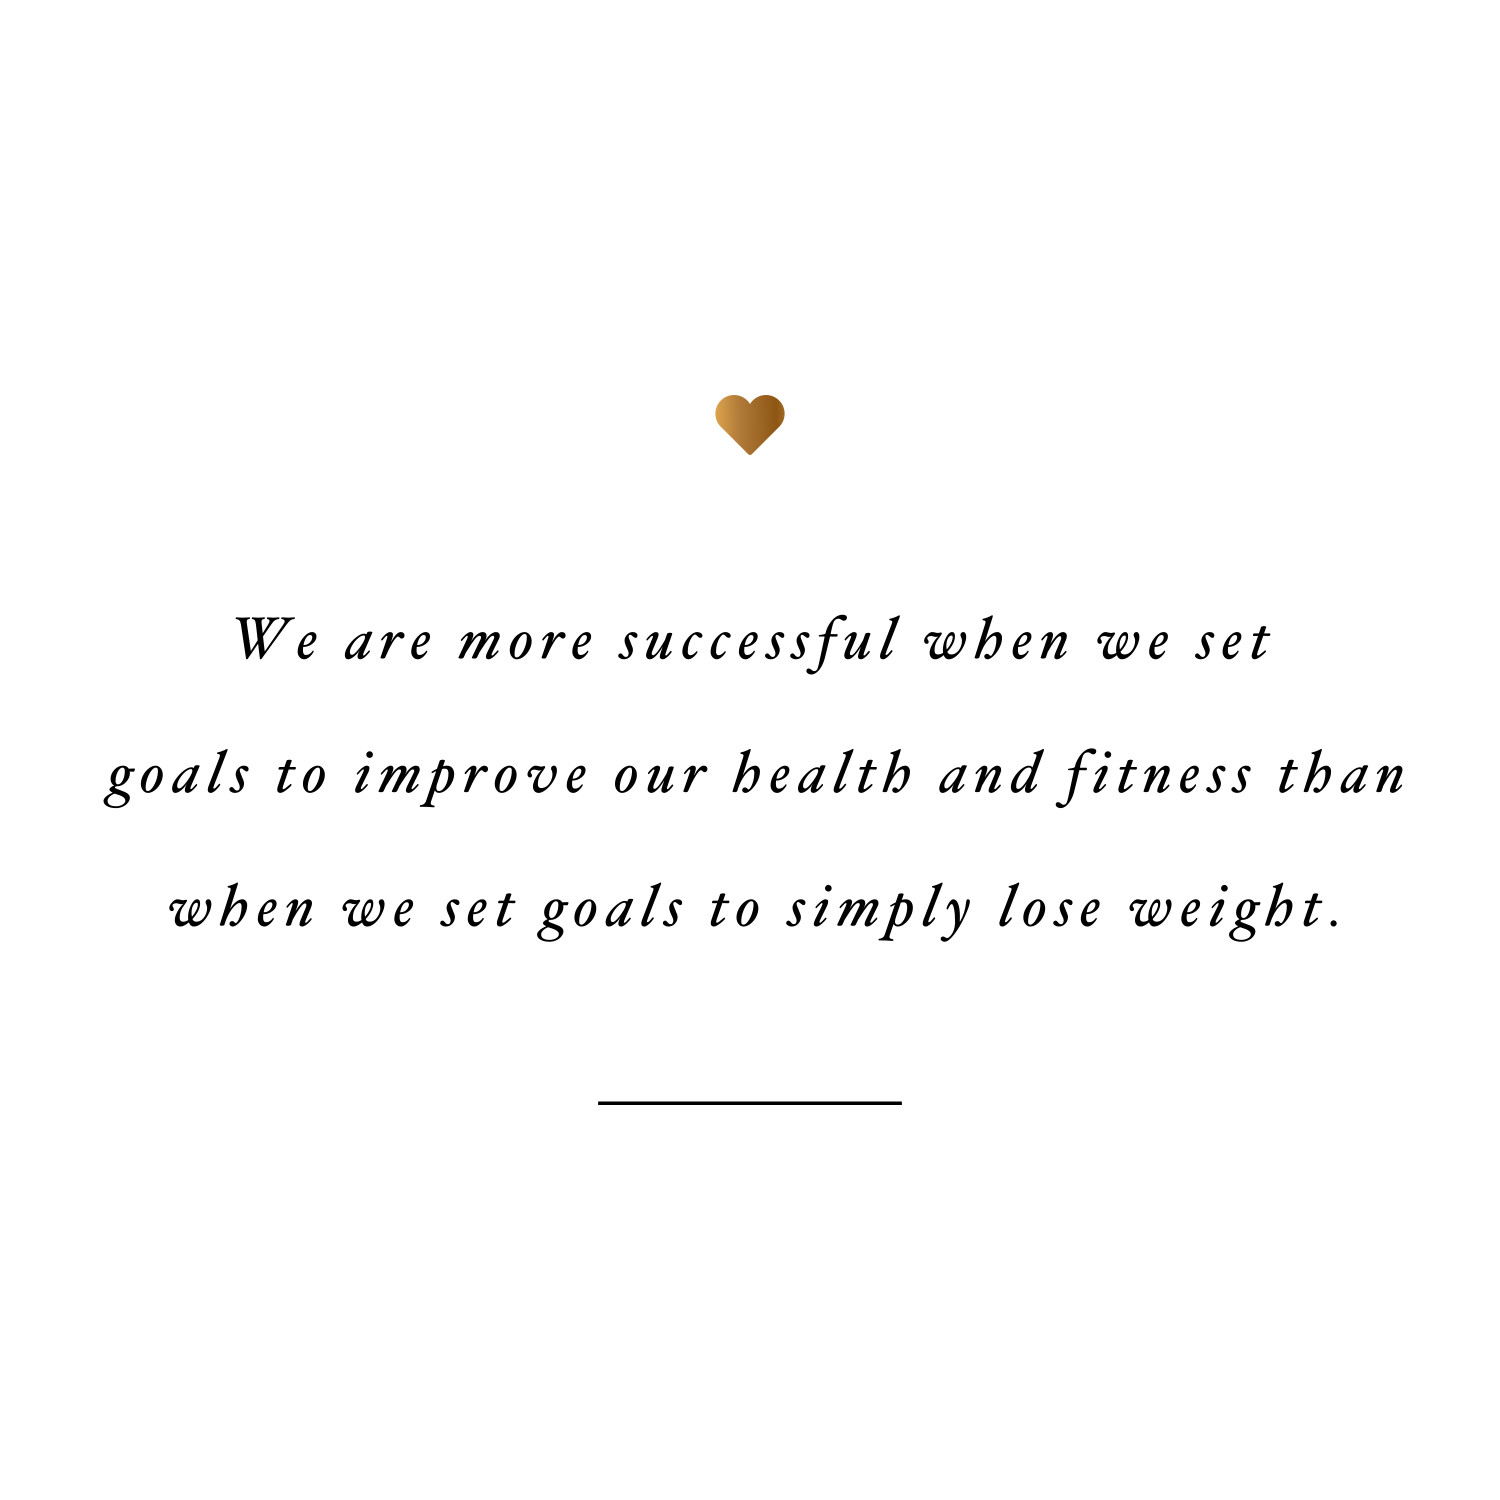 Set smart goals! Browse our collection of inspirational wellness and fitness quotes and get instant training and weight loss motivation. Stay focused and get fit, healthy and happy! https://www.spotebi.com/workout-motivation/set-smart-goals/